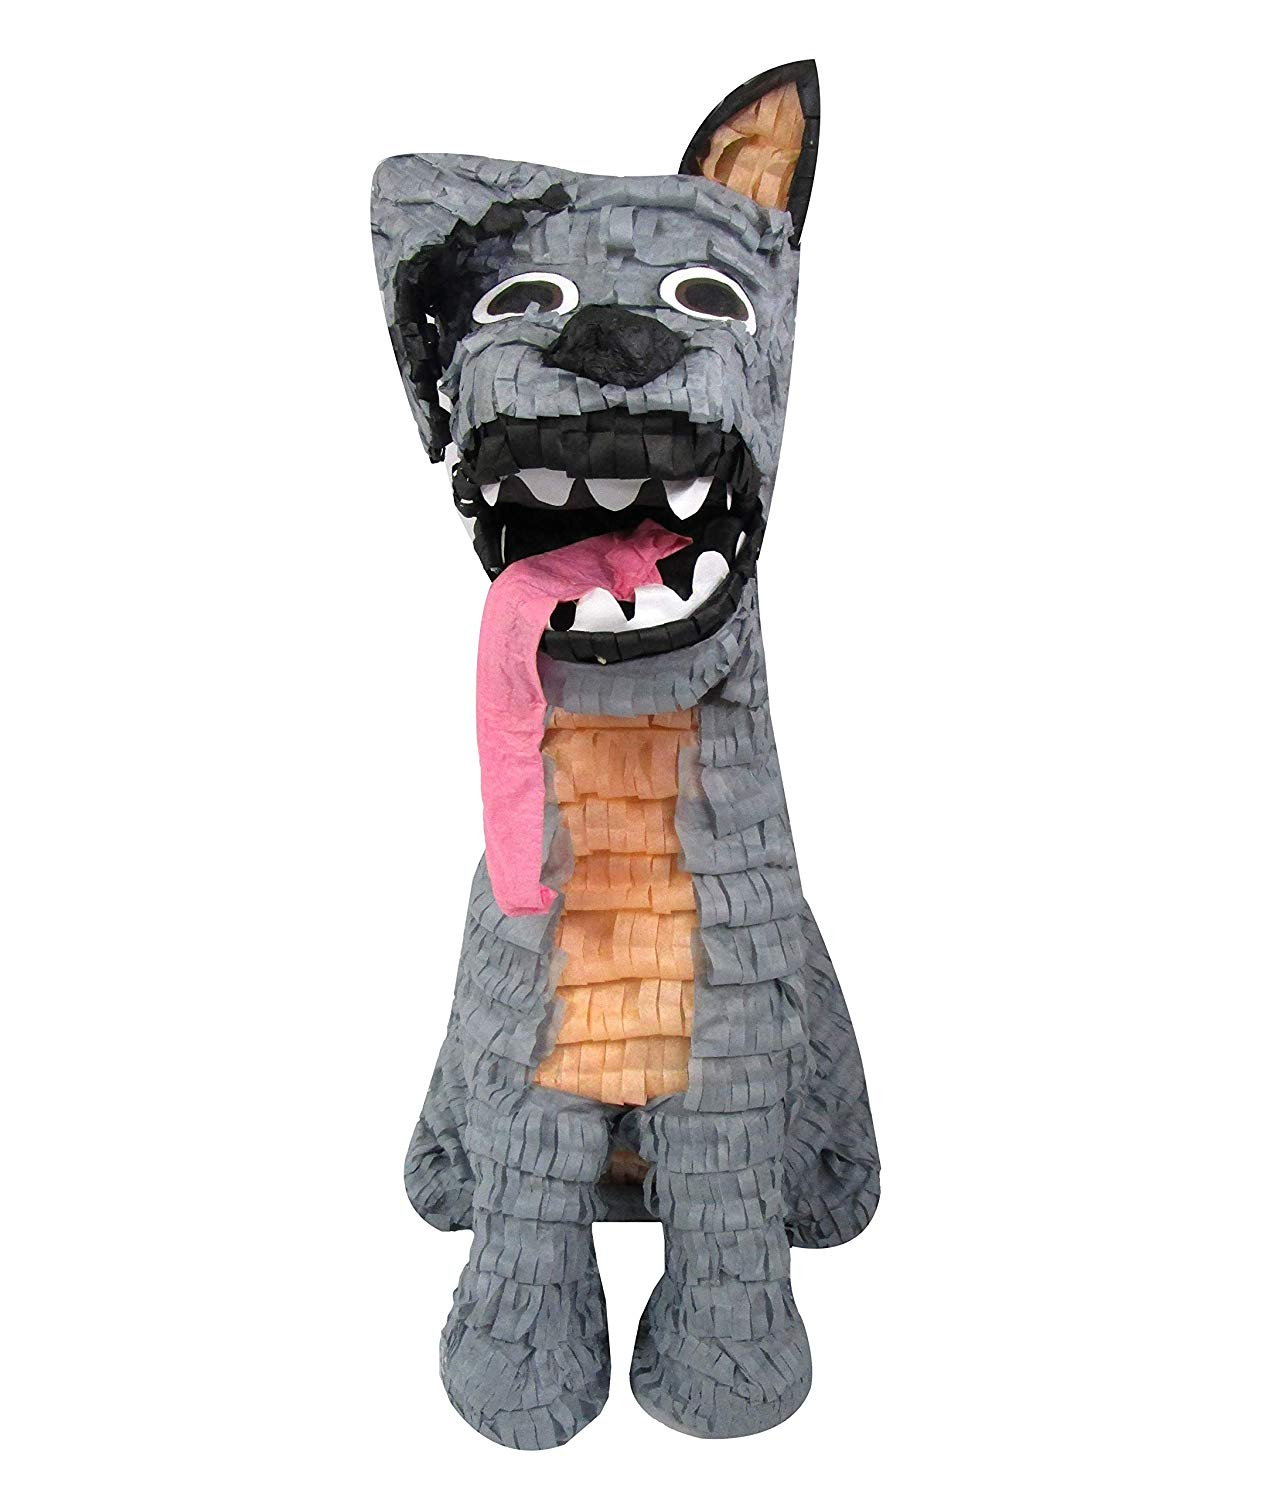 Spirited Dog Pinata, Party Game, Decoration and Photo Prop